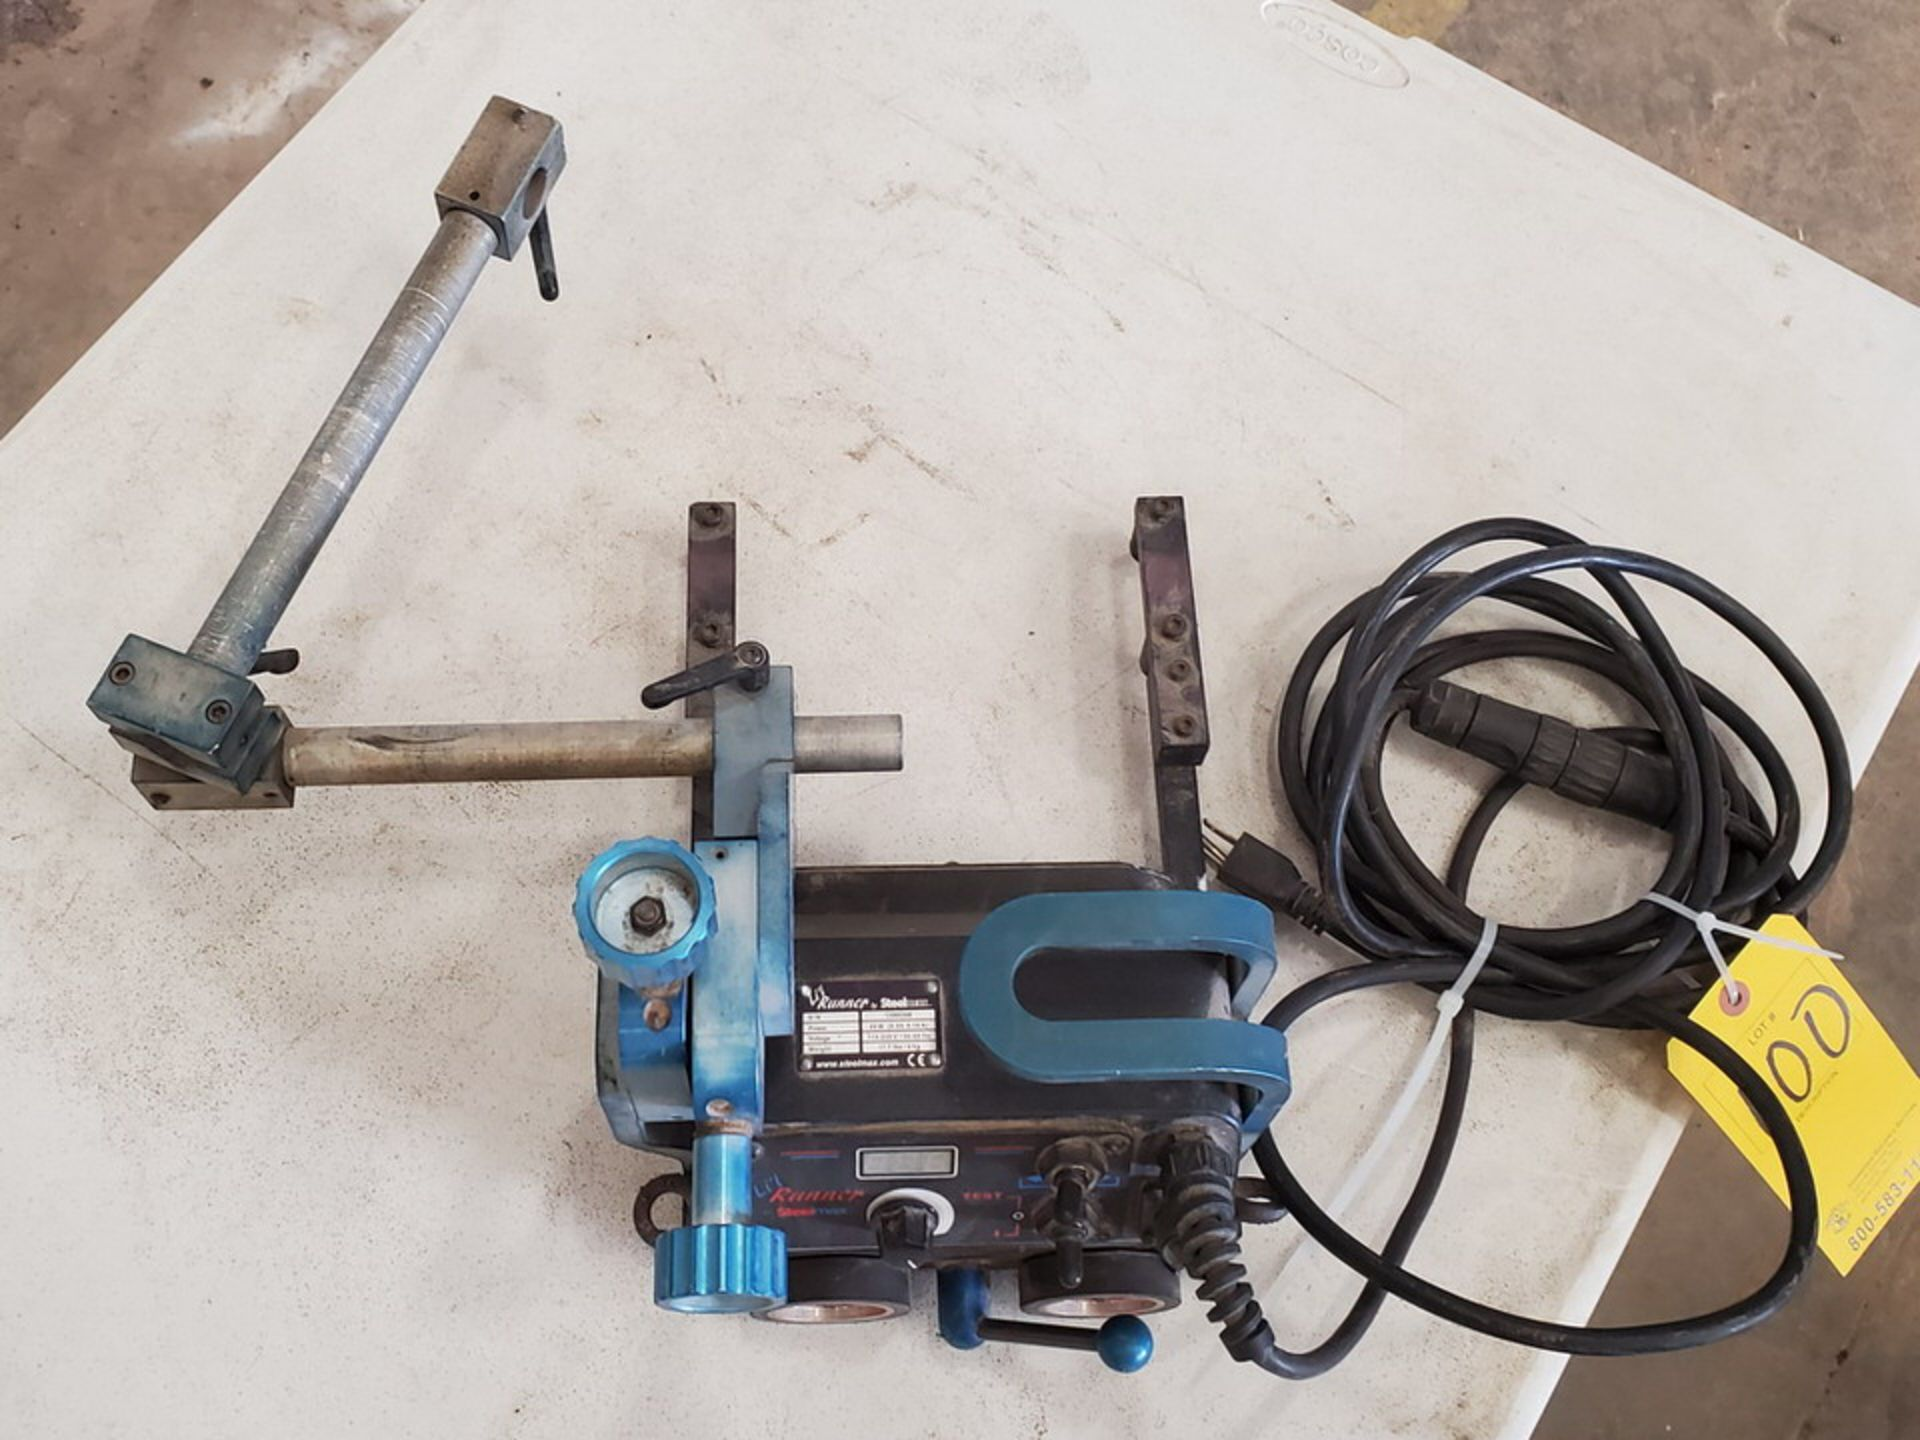 Steelmax Lil Runner Portable Fillet Welding Carriage 115-230V, 50/60HZ, 20W, .09-.18A - Image 6 of 7